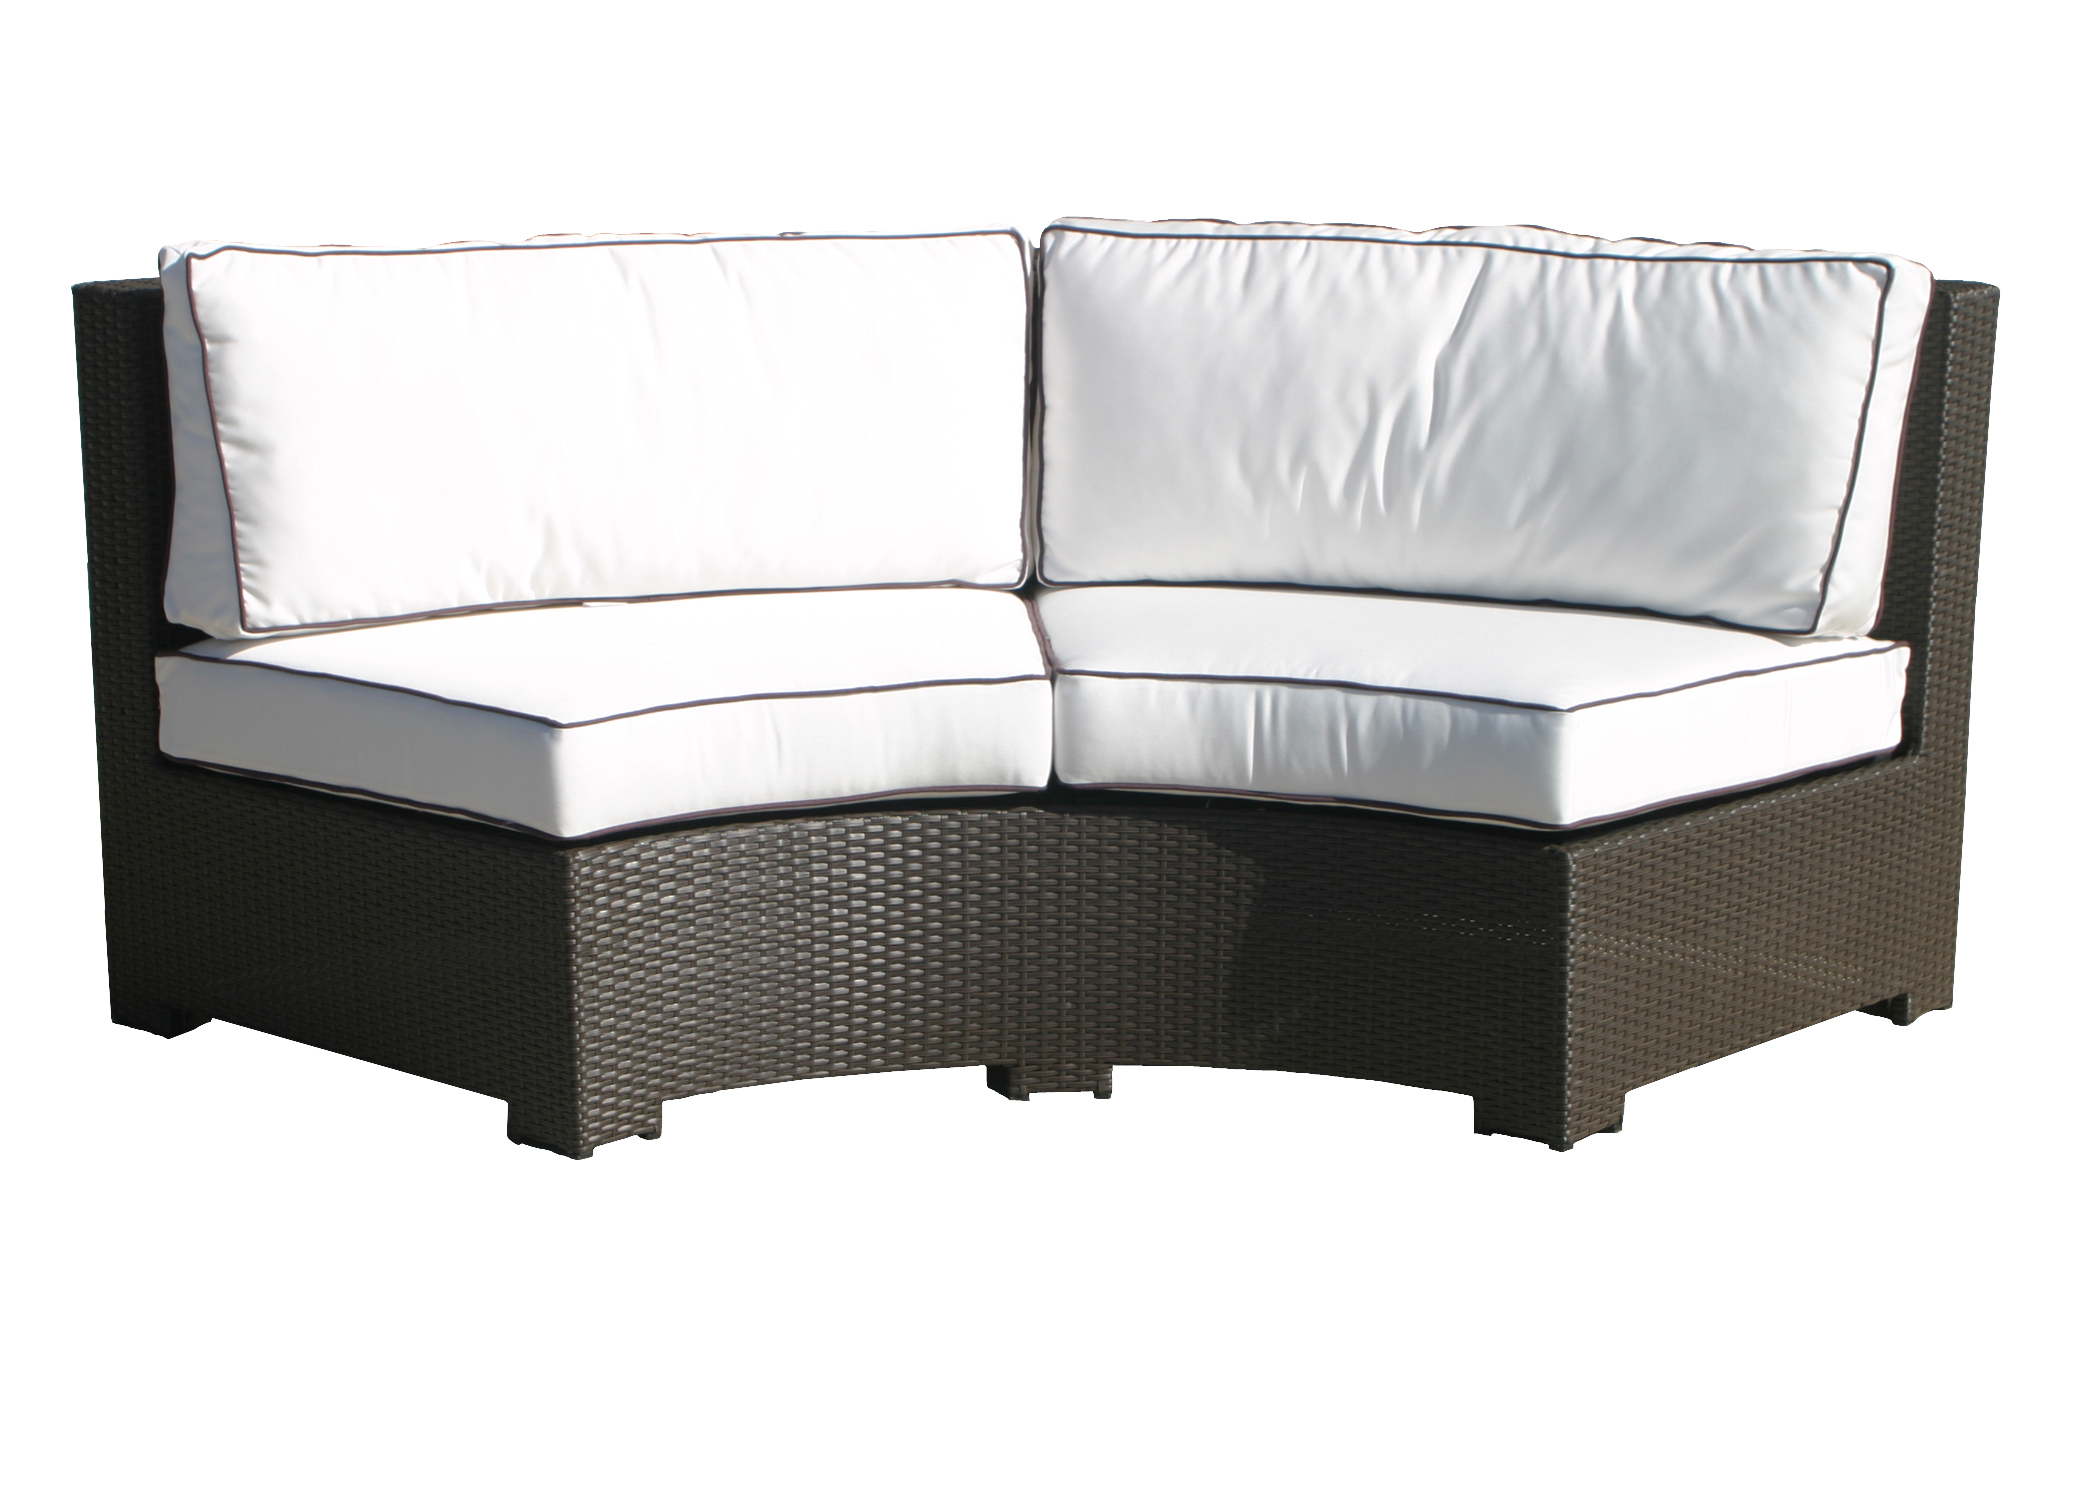 Wicker Furniture Raleigh Nc It Outdoor Furniture Outlets In North